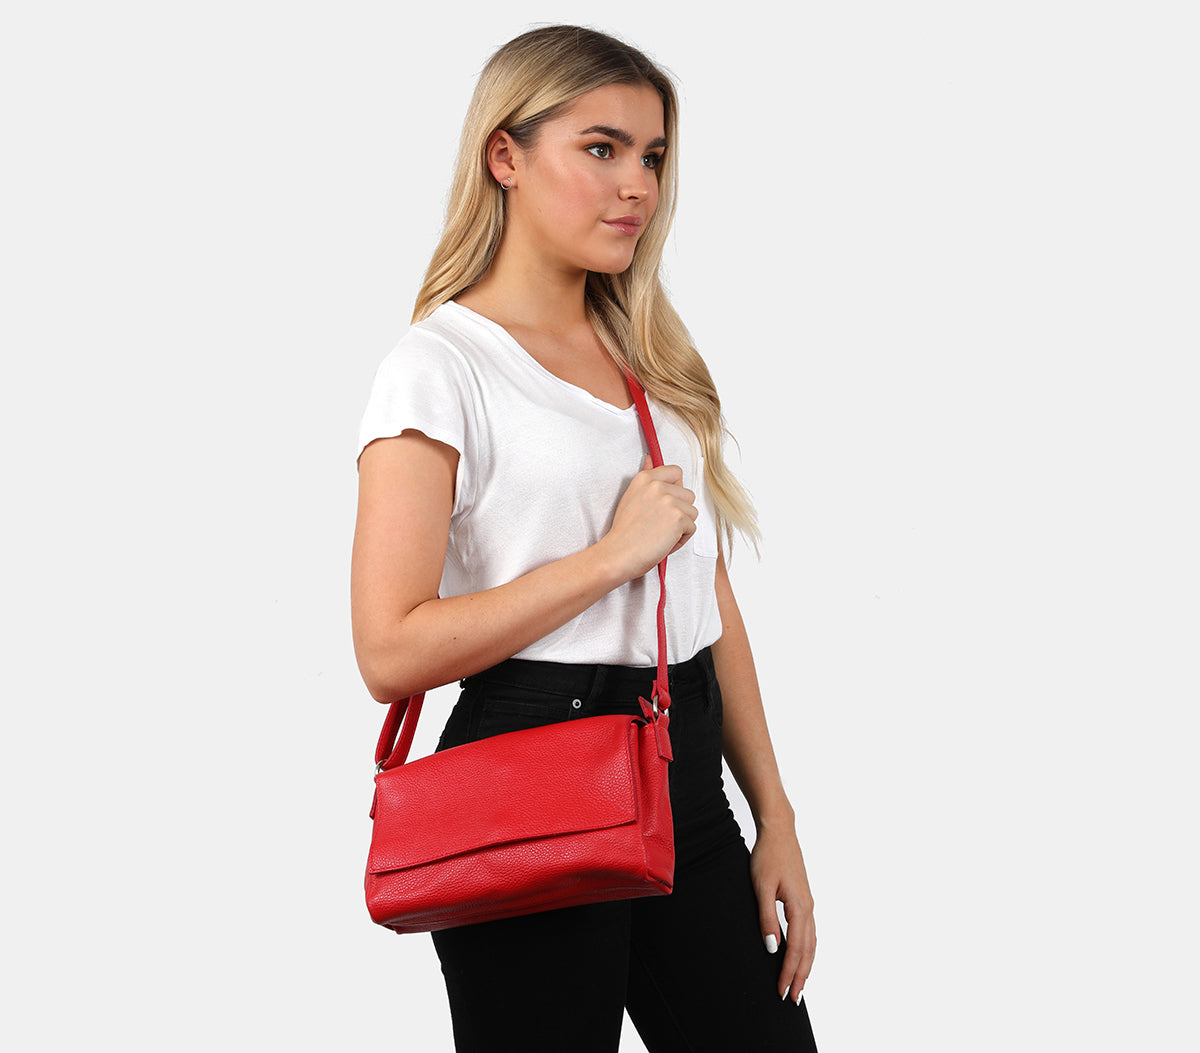 Marley Red Shoulder Bag